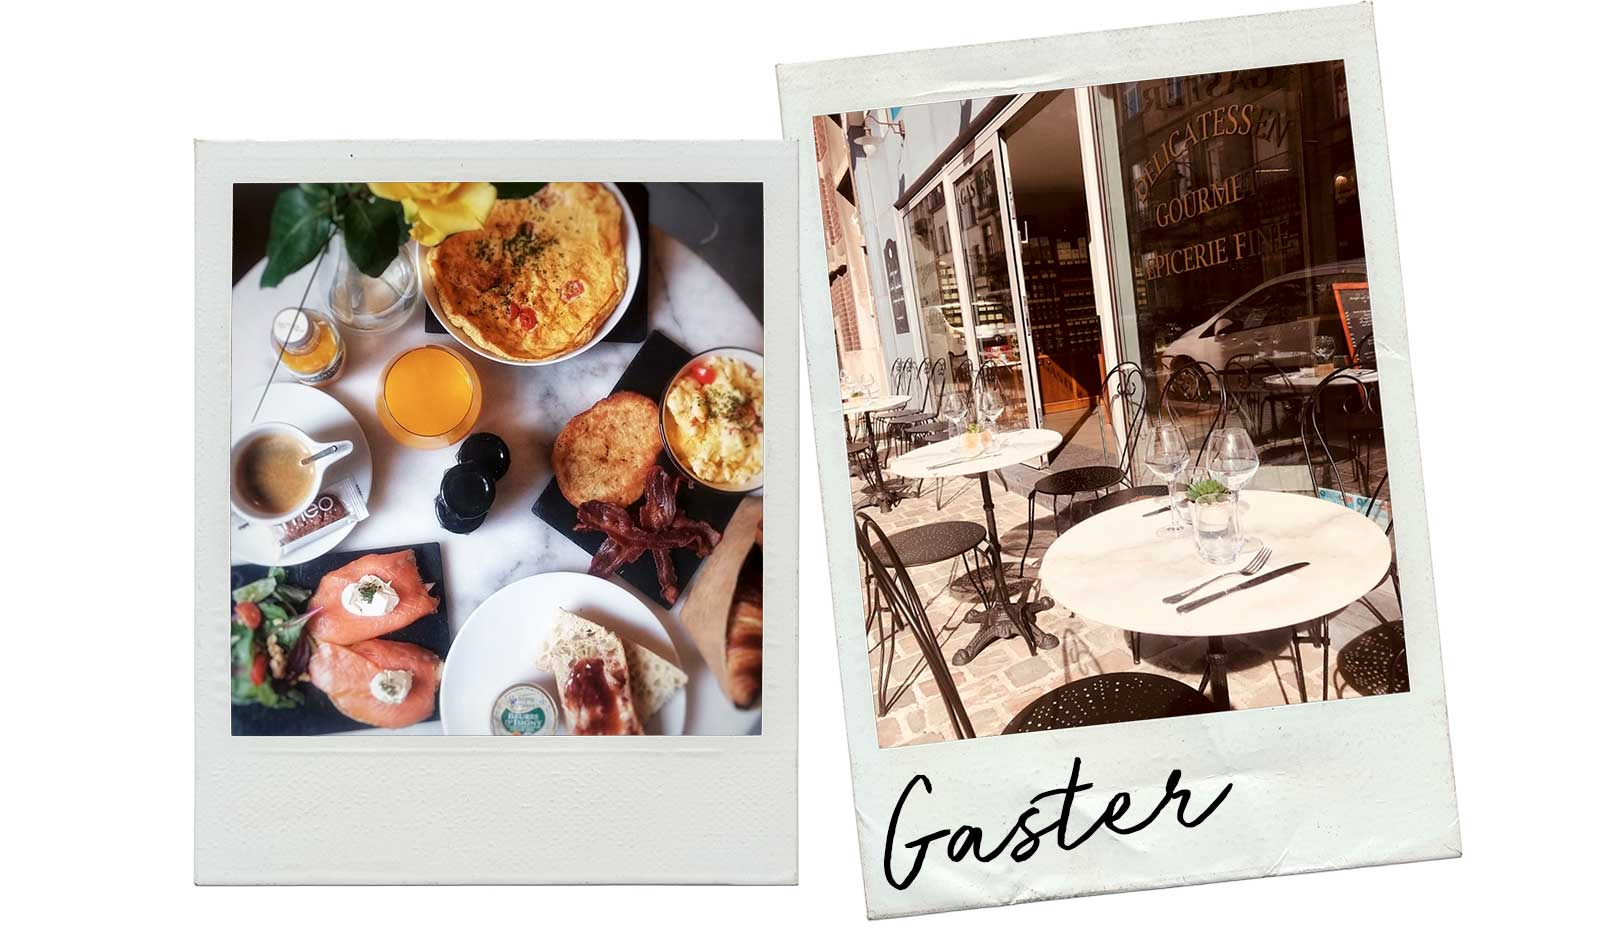 BRUNCH-GASTER-BLOG